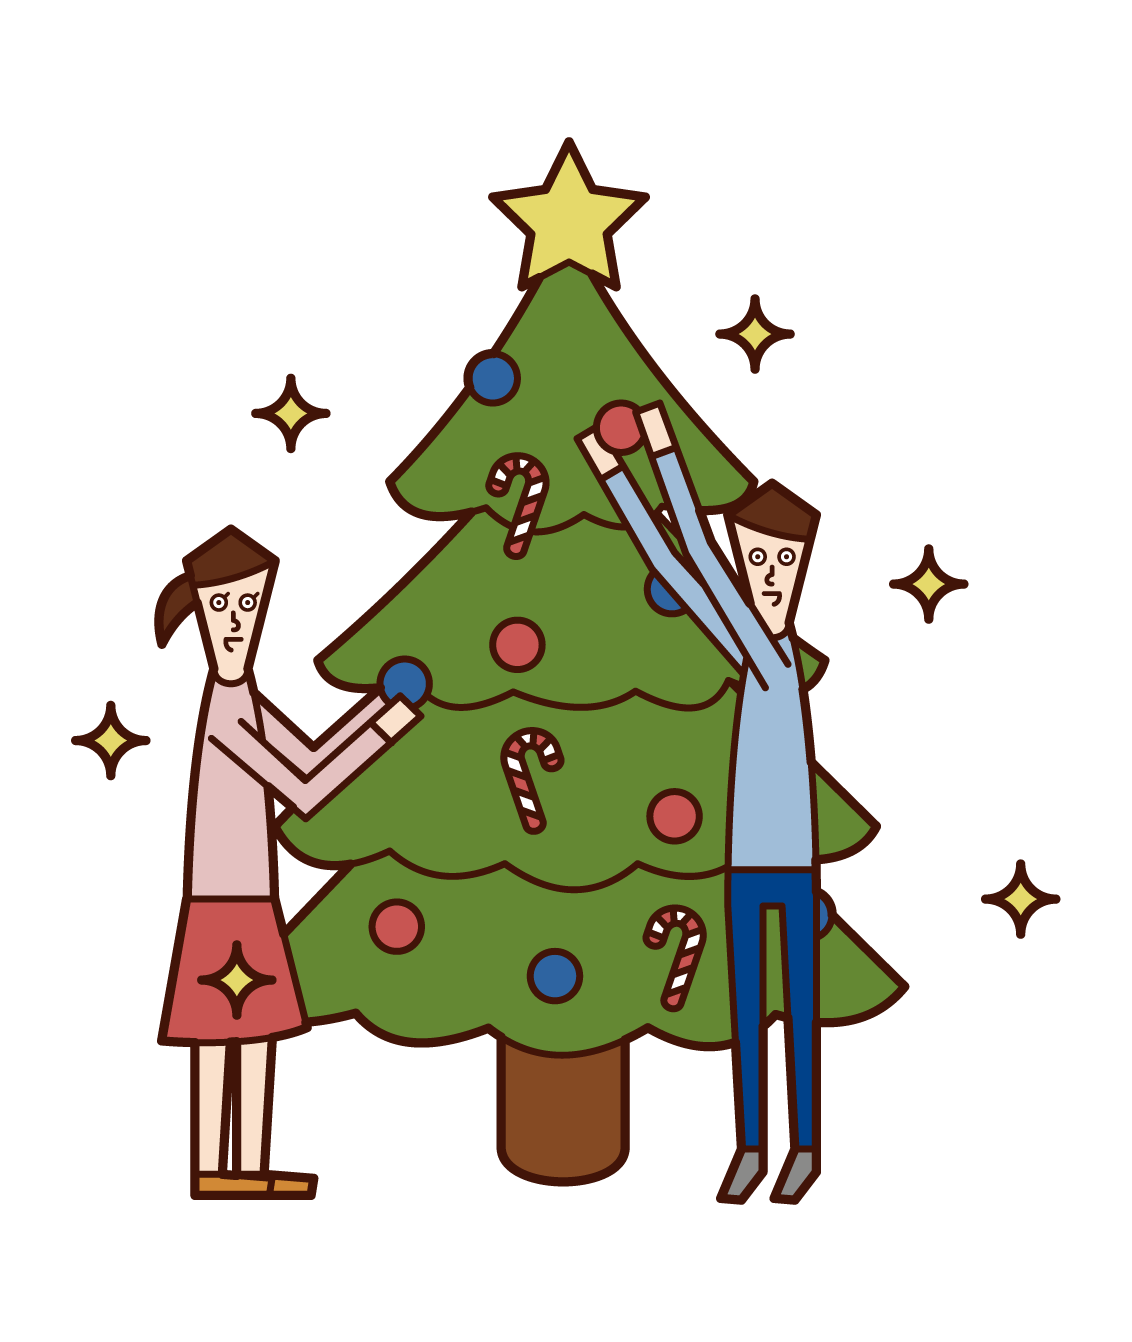 Illustrations of children (men and women) enjoying Christmas tree decorations